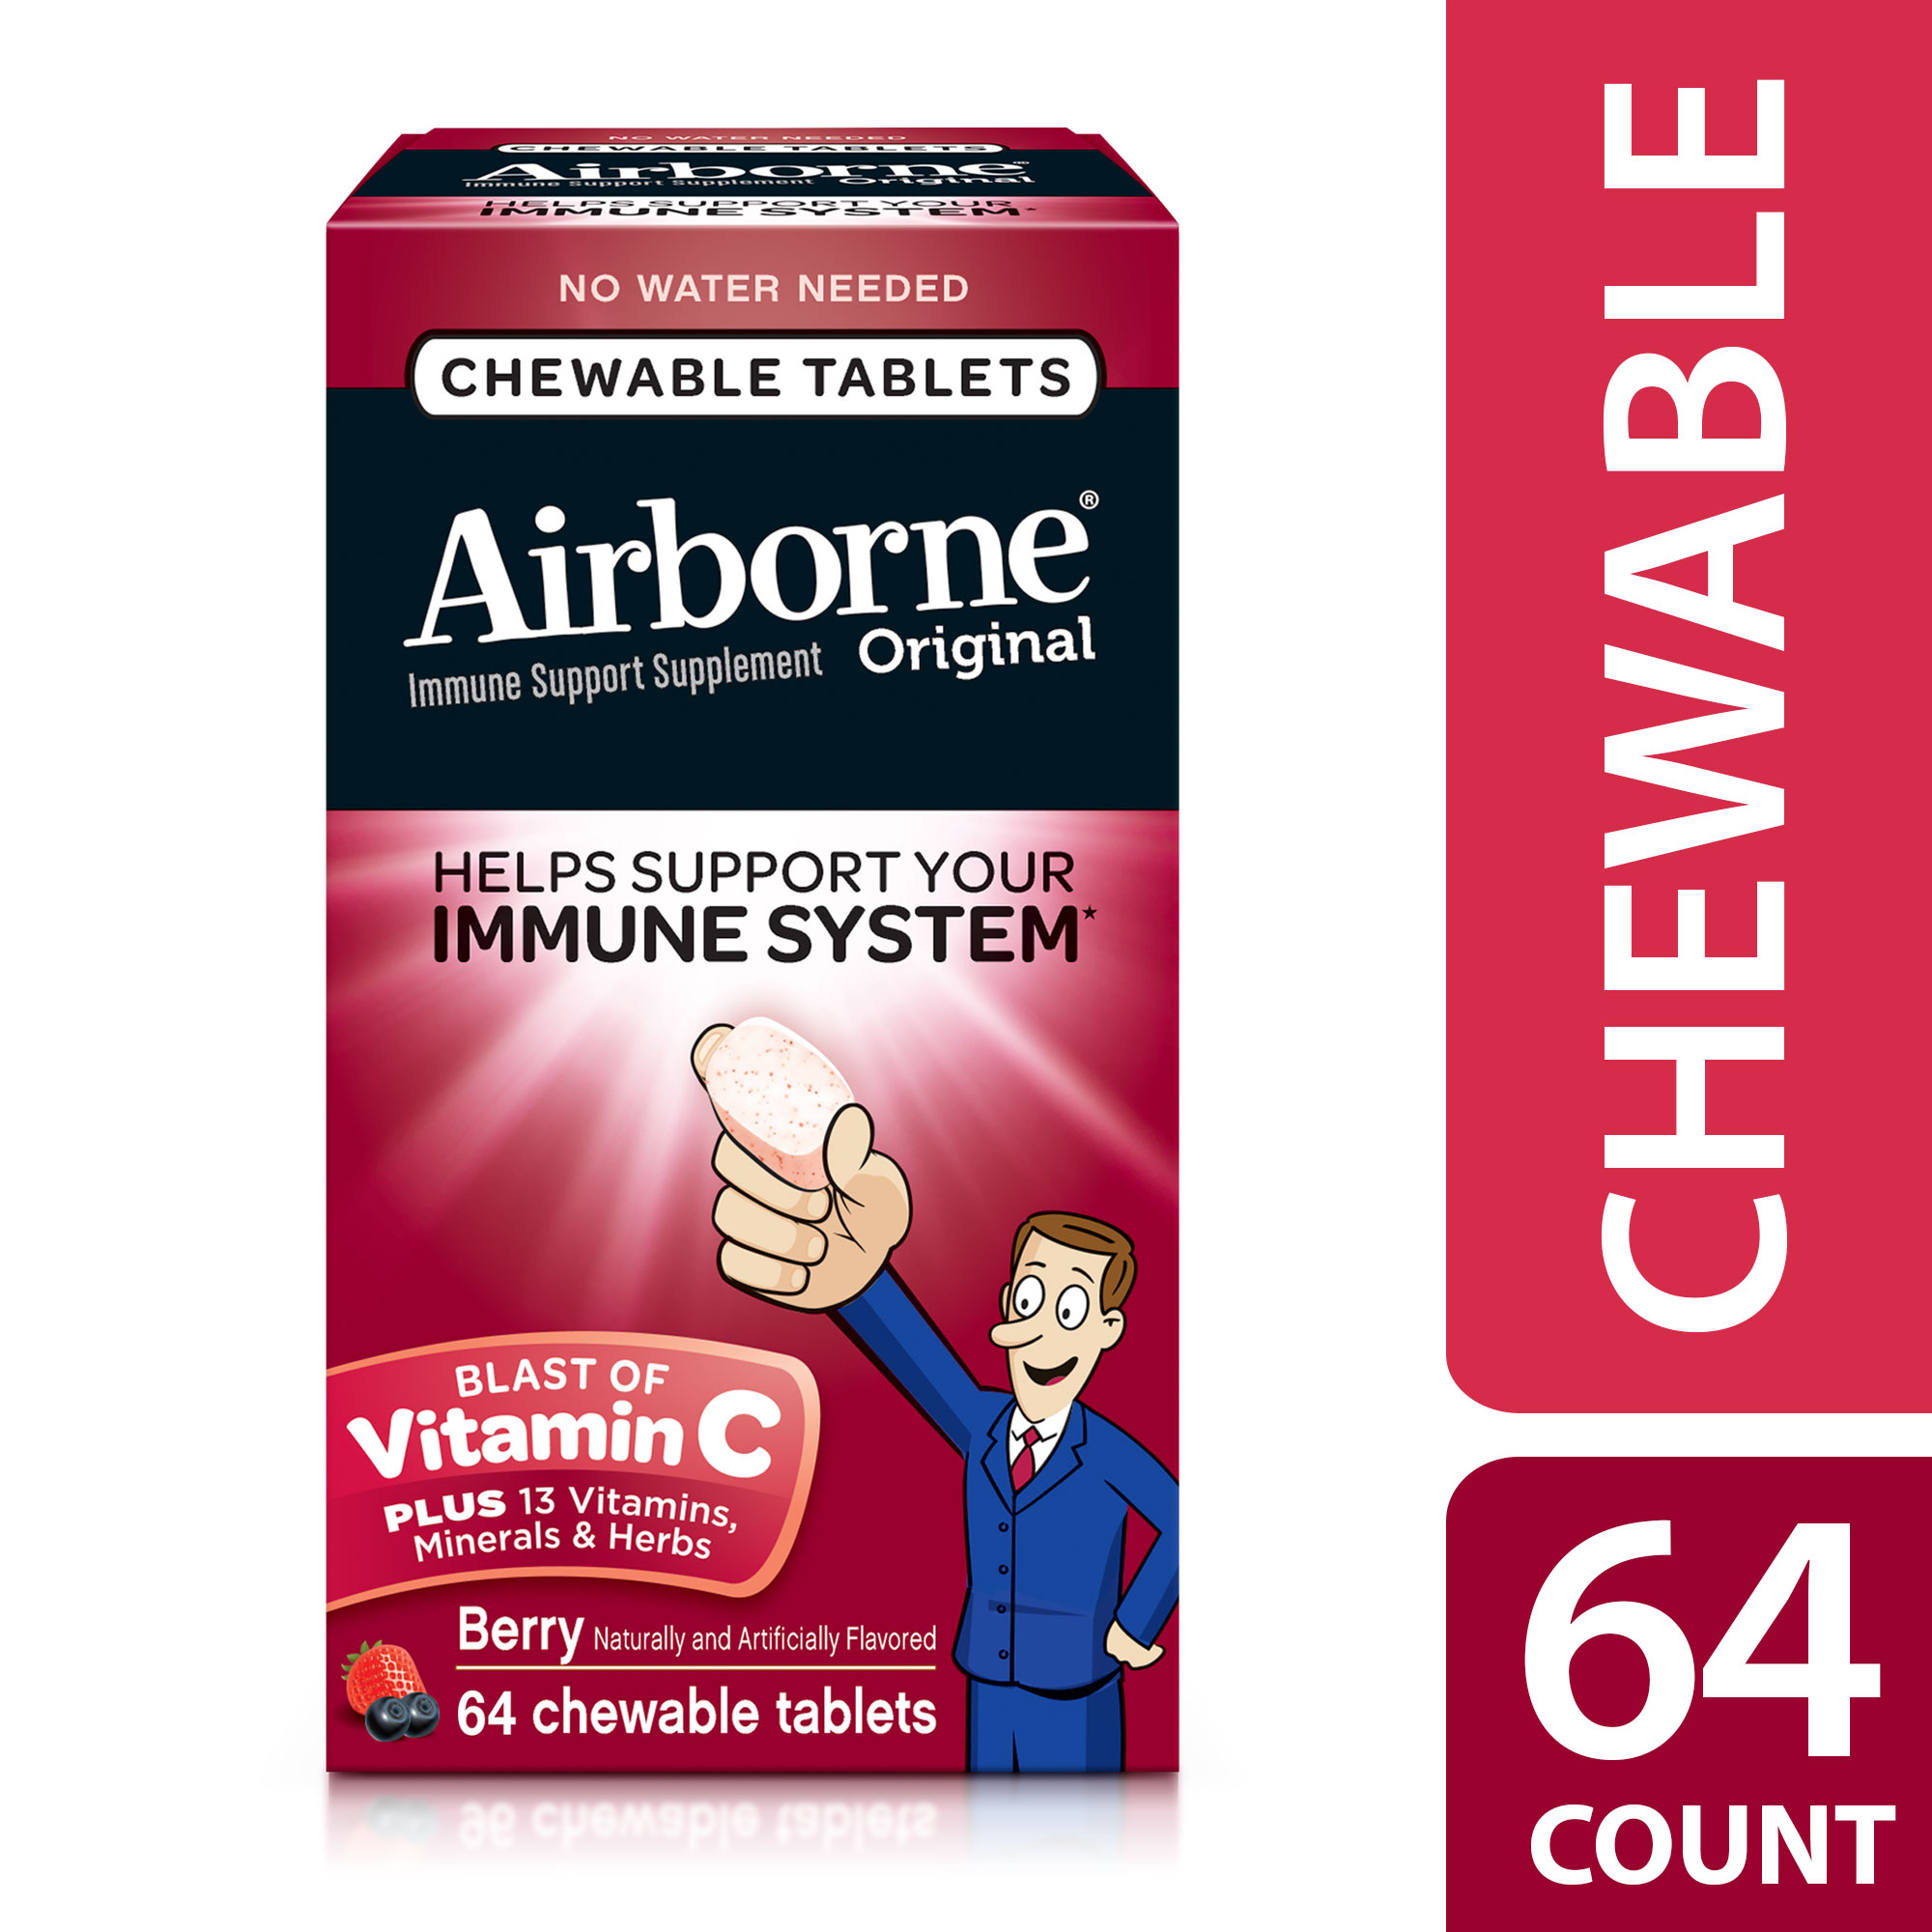 Airborne Chewable Vitamin C Tablets, Very Berry, 1000mg - 64 Chewable Tablets